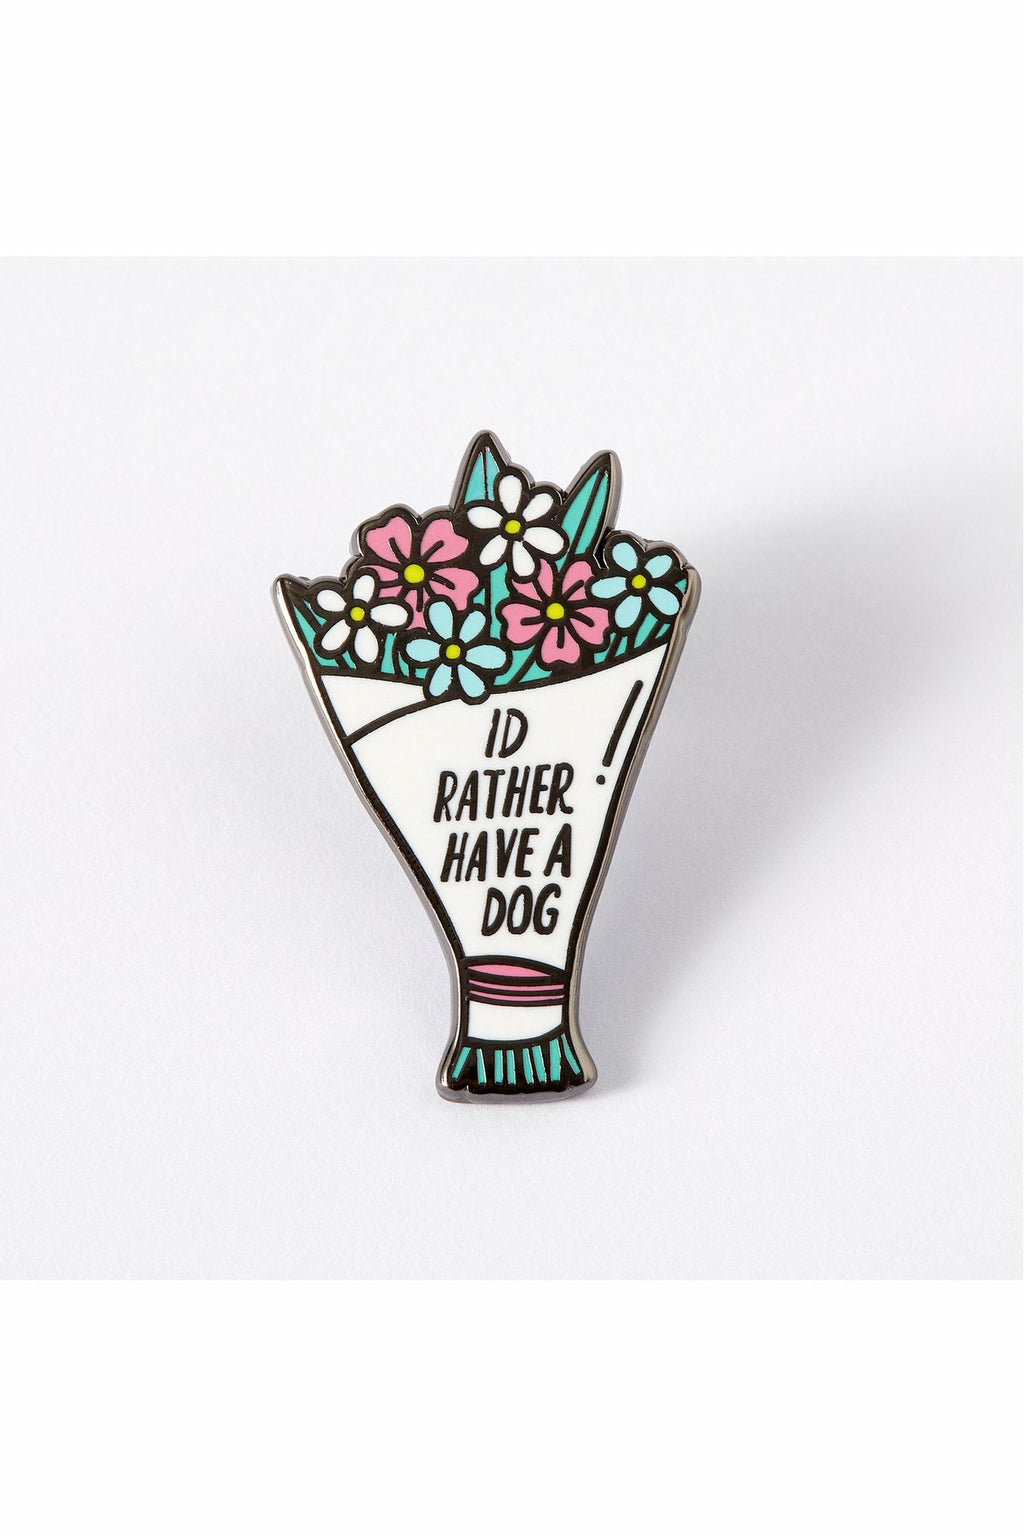 I'd Rather Have A Dog Enamel Pin